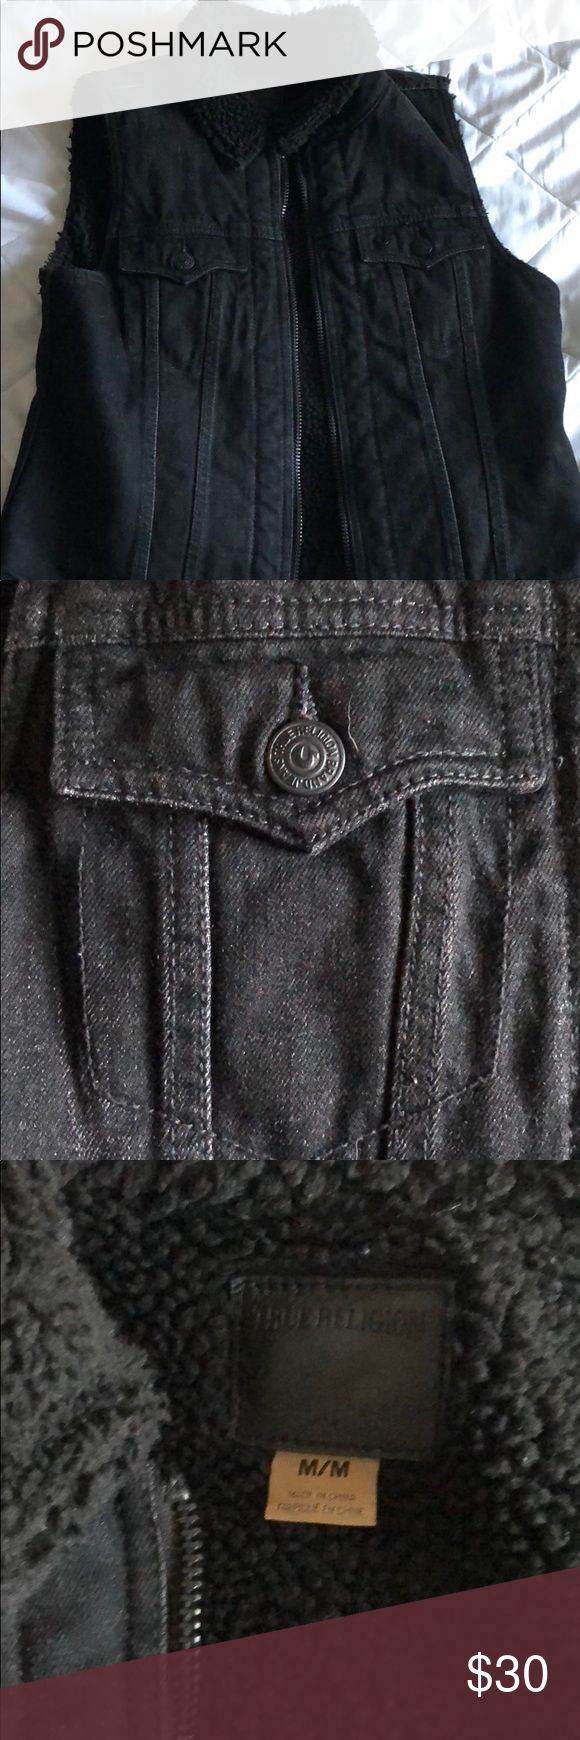 True Religion black denim vest with Sherpa lining Enjoy this zip up vest from True Religion. Black denim and Sherpa lining to keep you warm. Great with any outfit especially this time of year! True Religion Jackets & Coats Vests